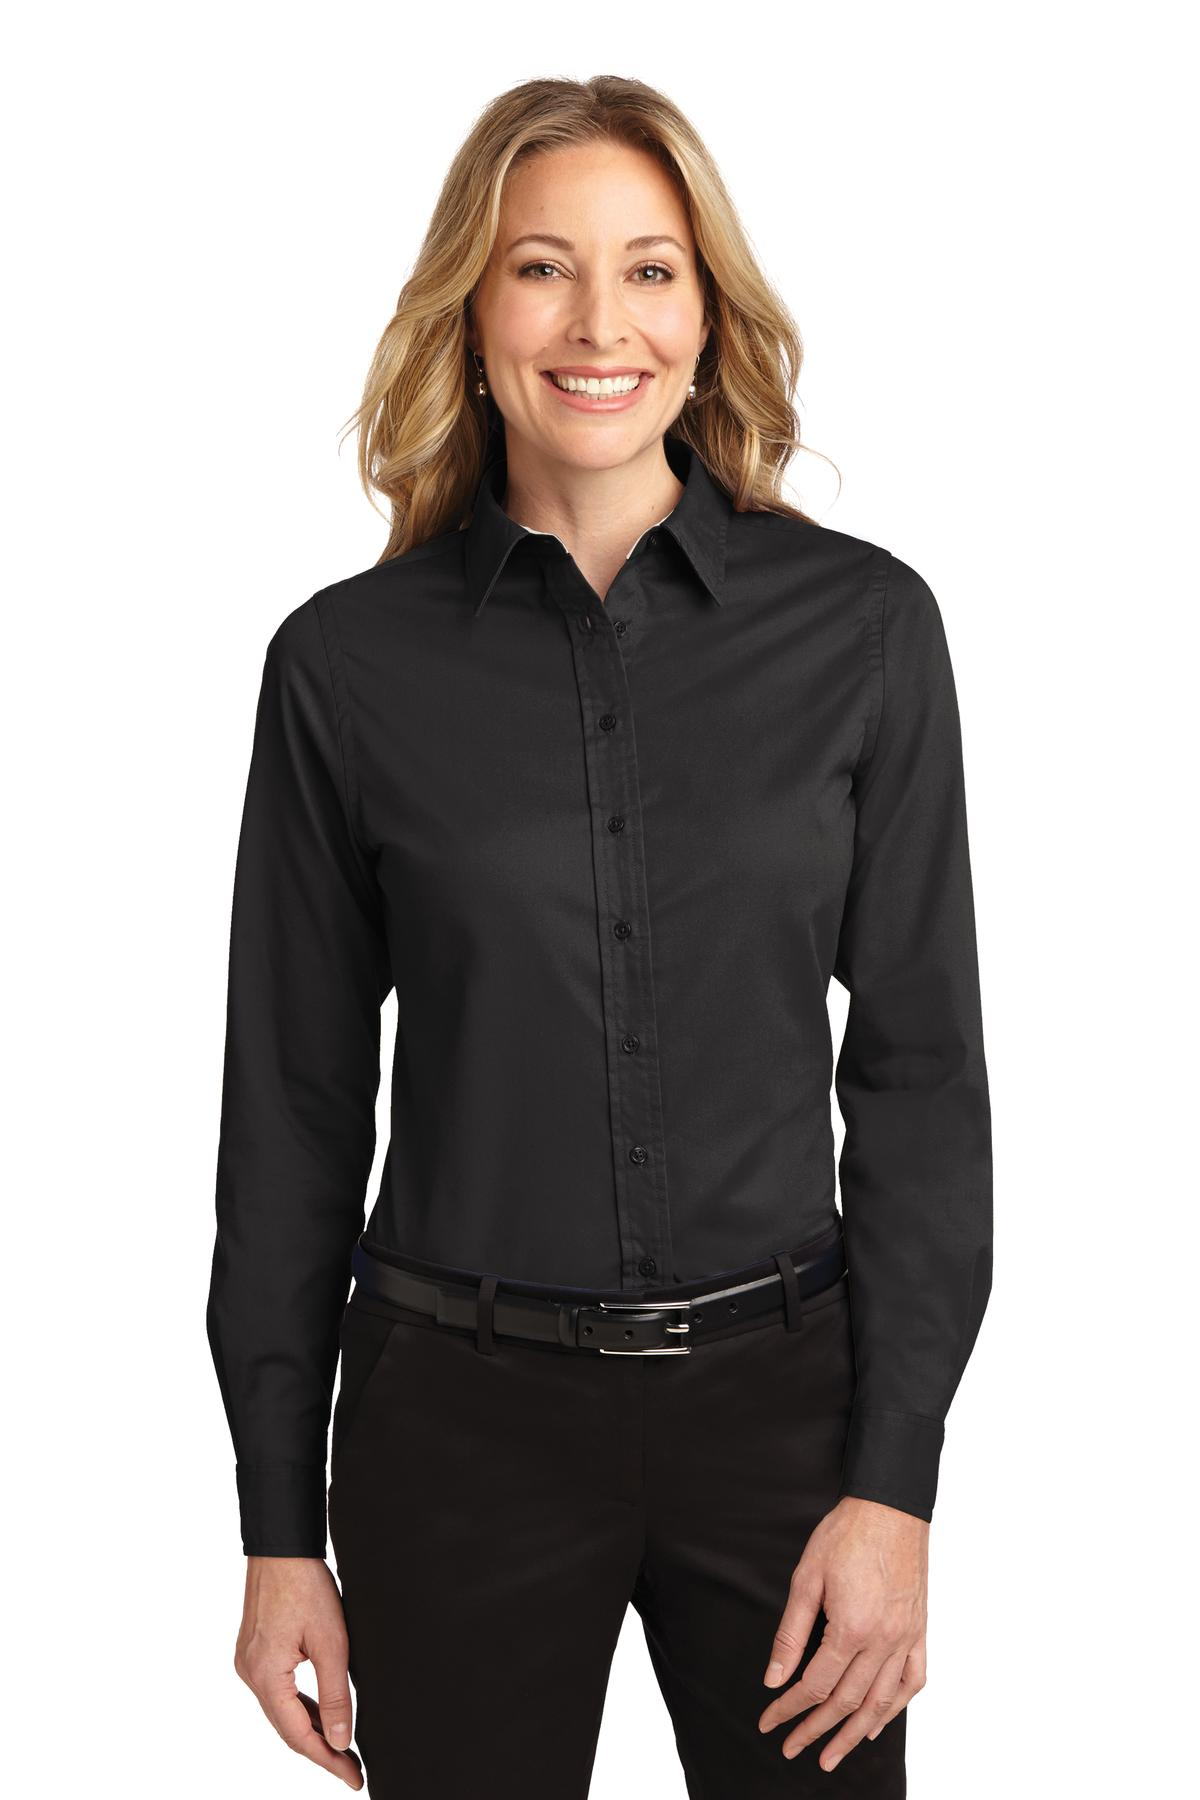 Overstock uses cookies to ensure you get the best experience on our site. If you continue on our site, you consent to the use of such cookies. Learn more. OK Tops. Clothing & Shoes / Women White Blouse Shirt Women Button Down Long Sleeve Office Tops. 1 Review. SALE. More Options.